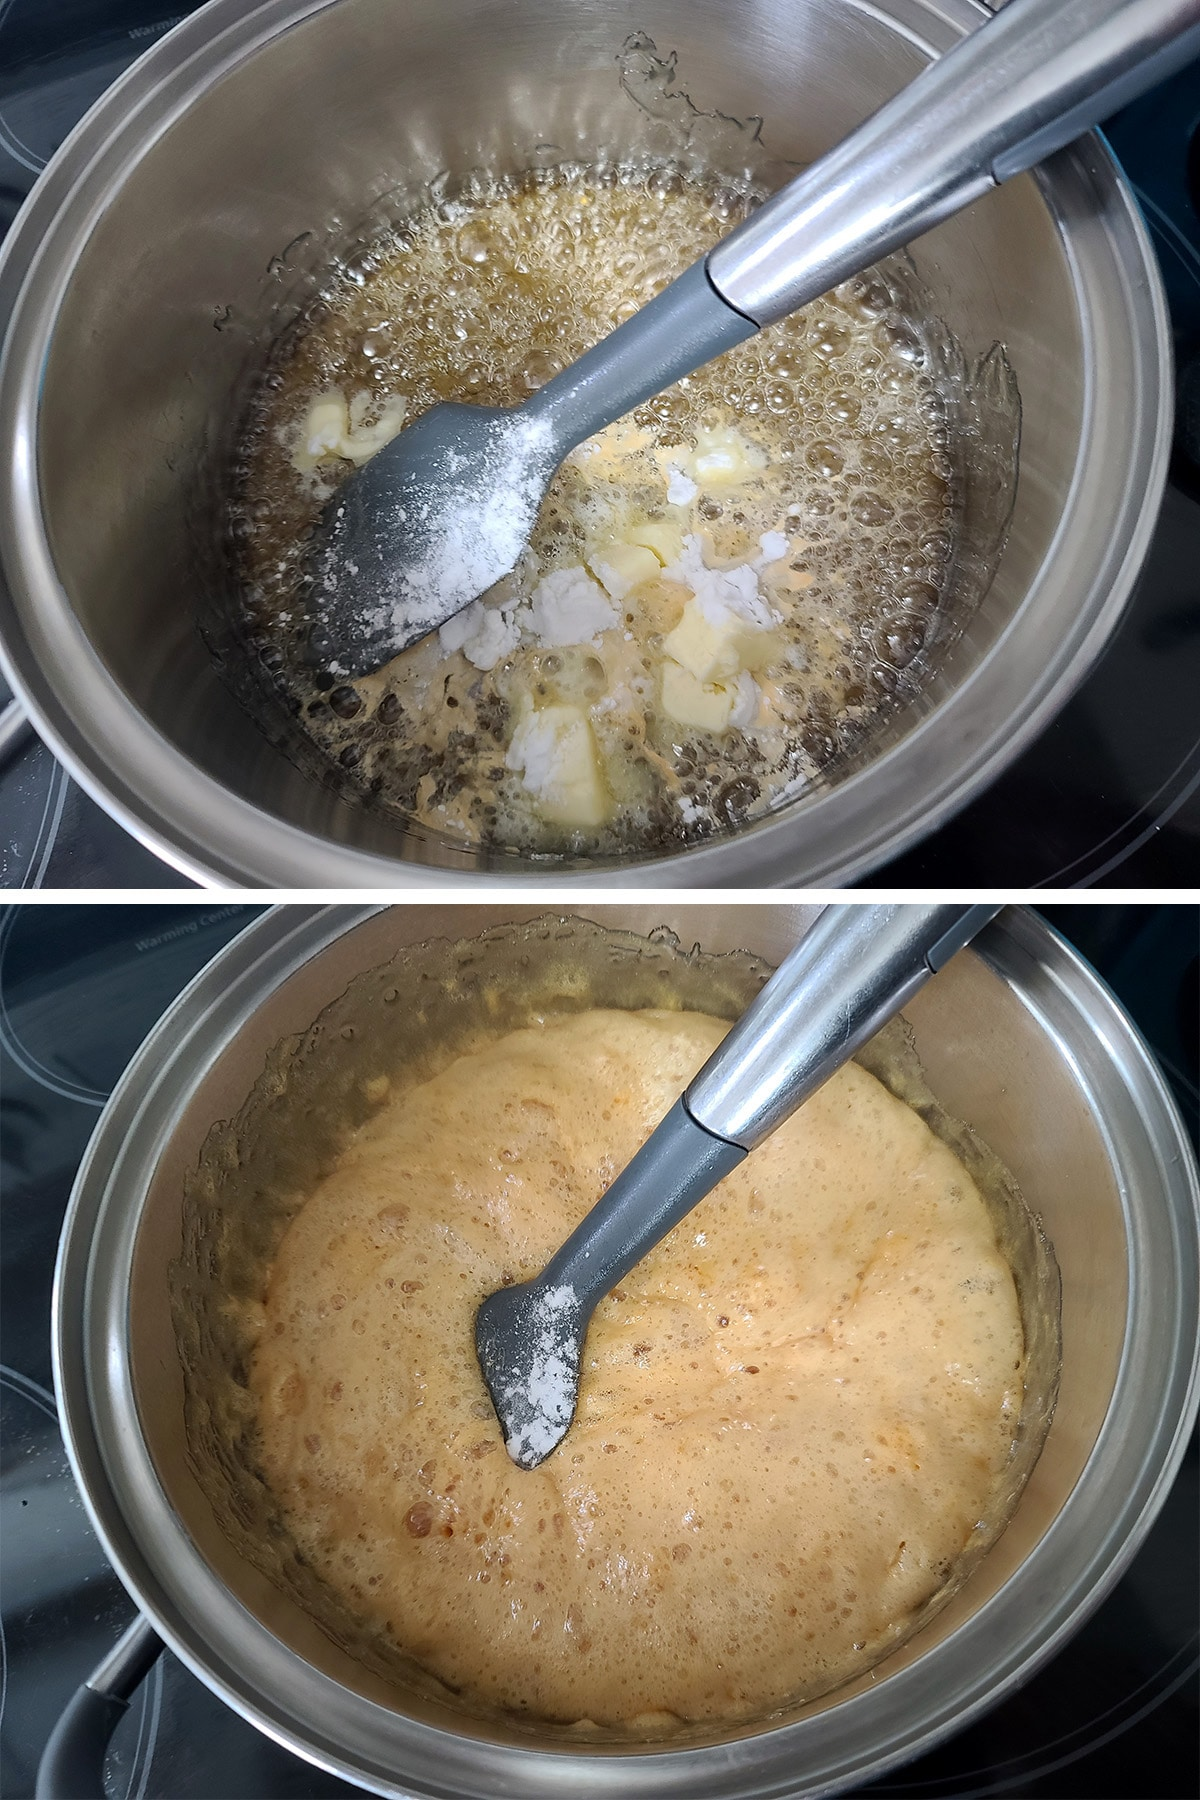 Butter and baking soda being mixed into the hot sugar syrup.